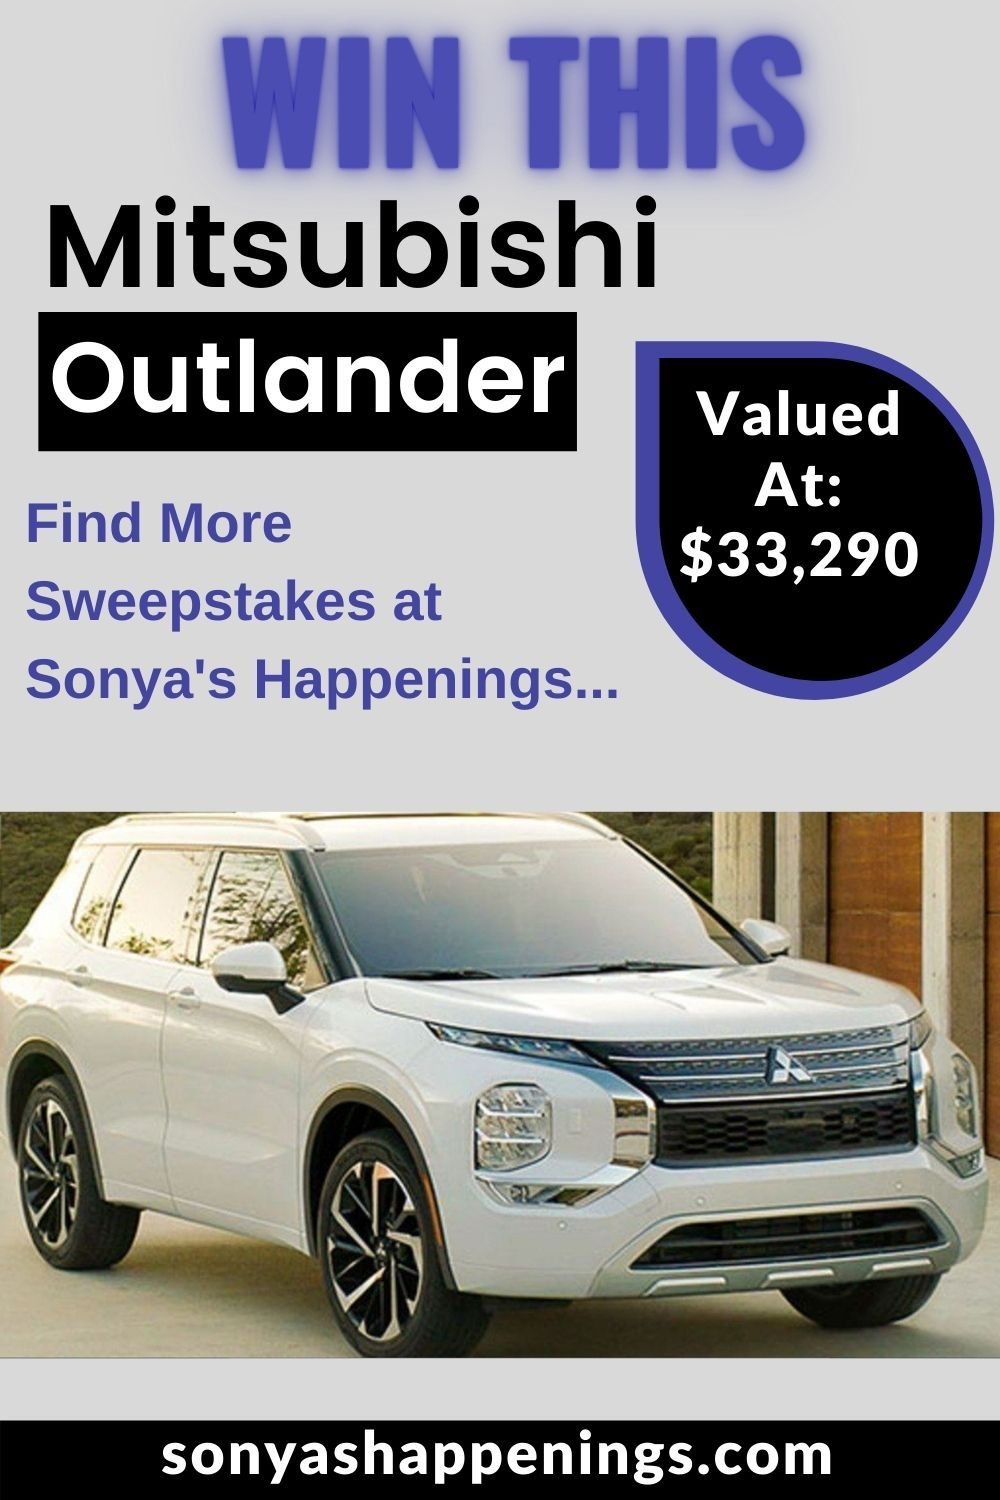 Enter To Win A 2022 Mitsubishi Outlander With Technology Package 33 290 Value Sweeps Ends 3 30 21 In 2021 Technology Package Mitsubishi Outlander Outlander